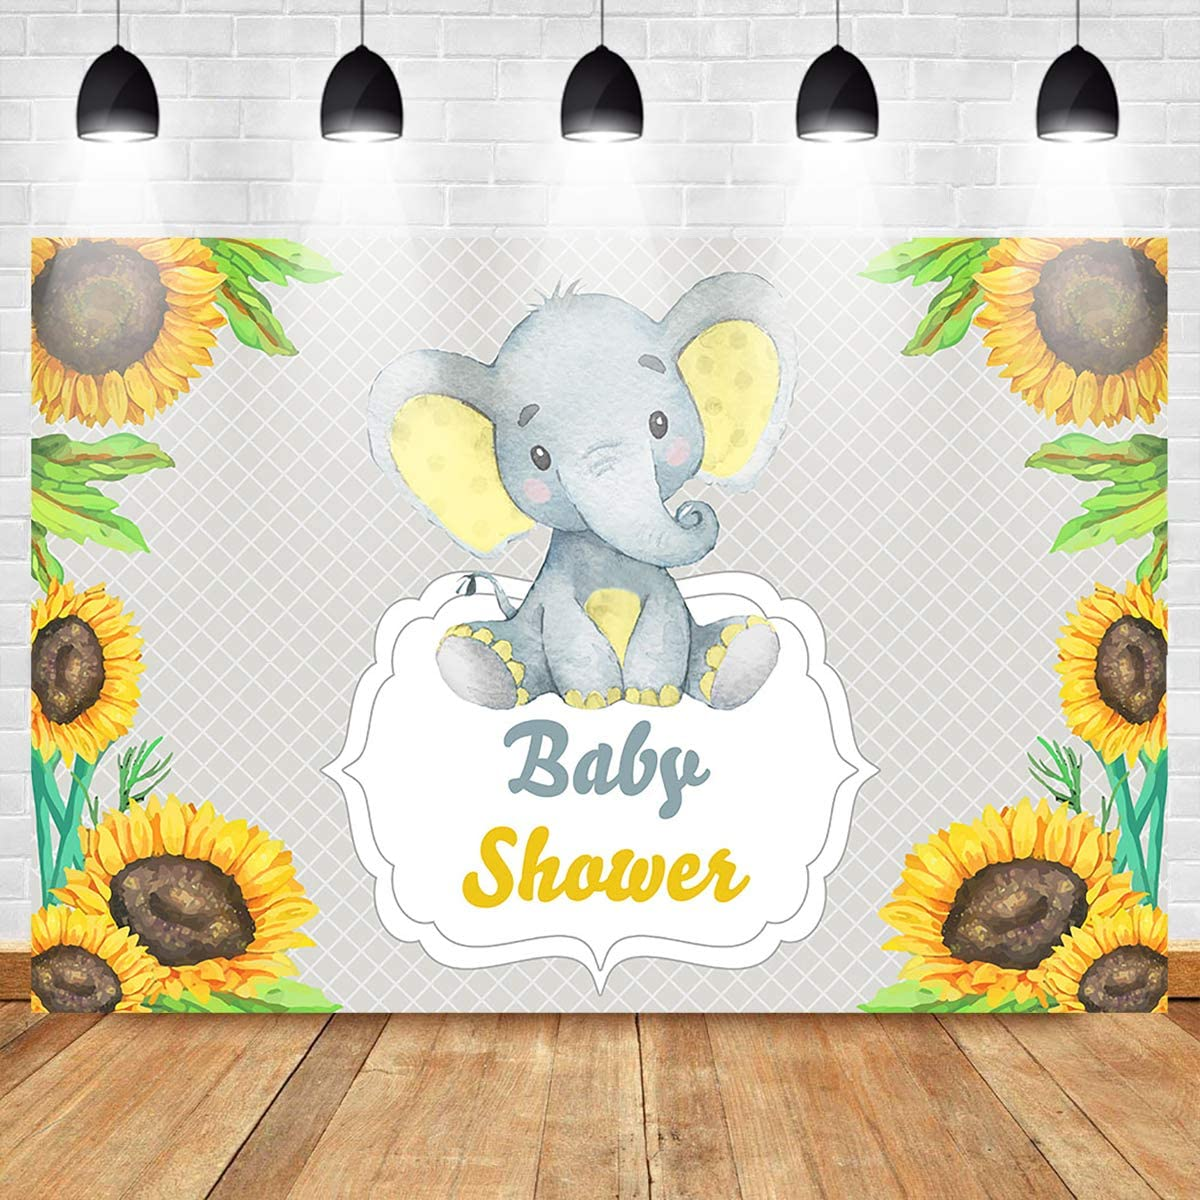 Mocsicka Elephant Baby Shower Backdrop Yellow Sunflower Watercolor Flowers Background 7X5ft Cute Yellow Elephant Baby Shower Party Banner Backdrops